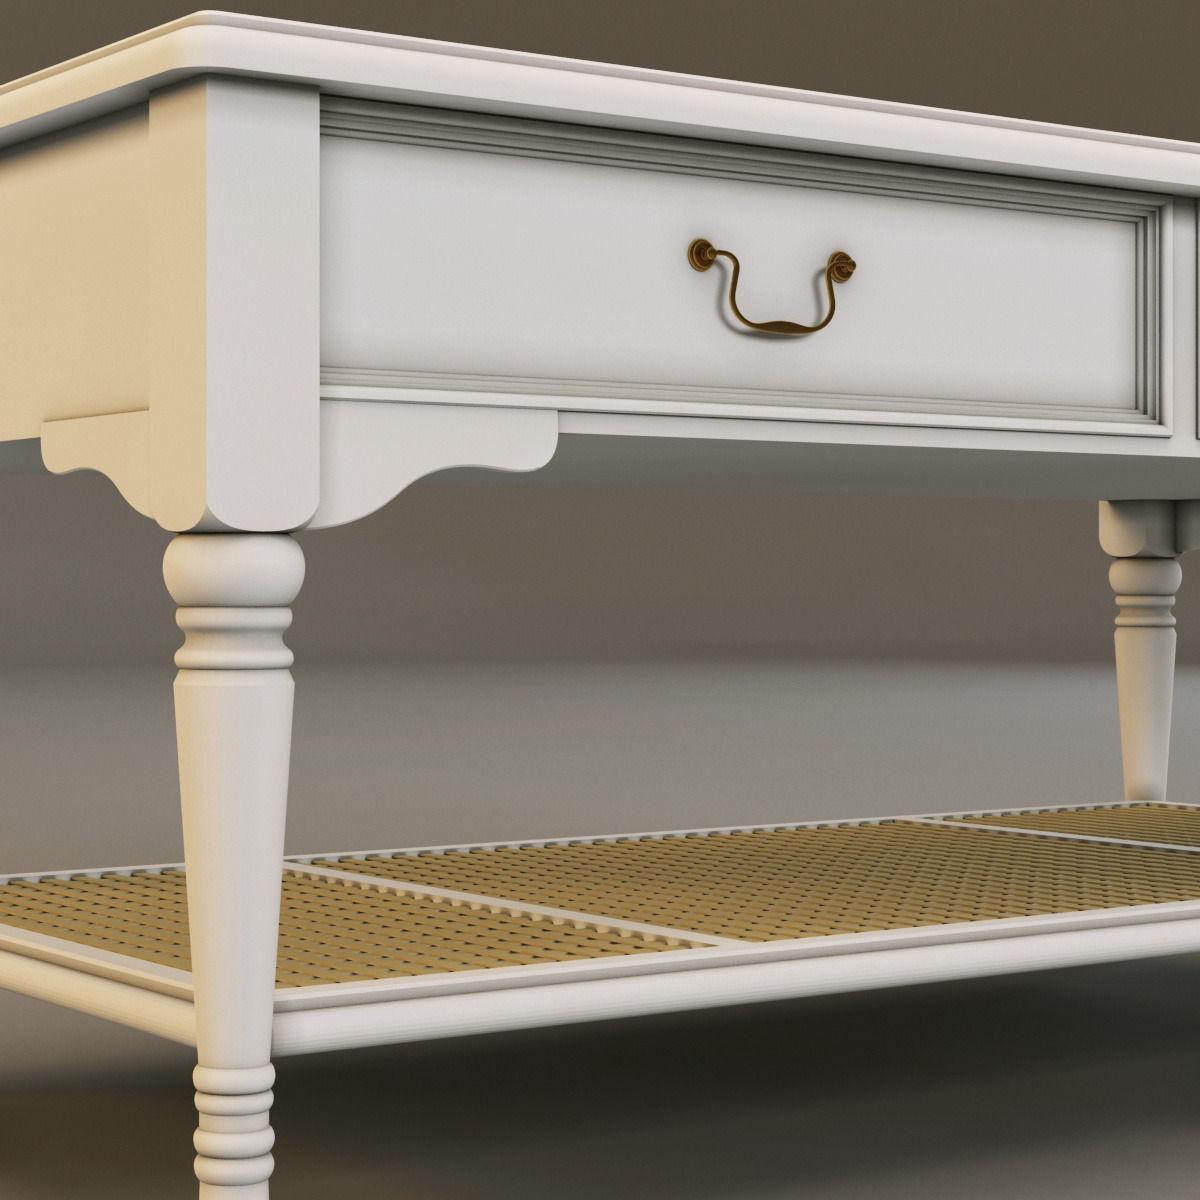 Laura Ashley Coffee Table With Drawers: Laura Ashley Coffee Table 3D Model MAX OBJ 3DS FBX